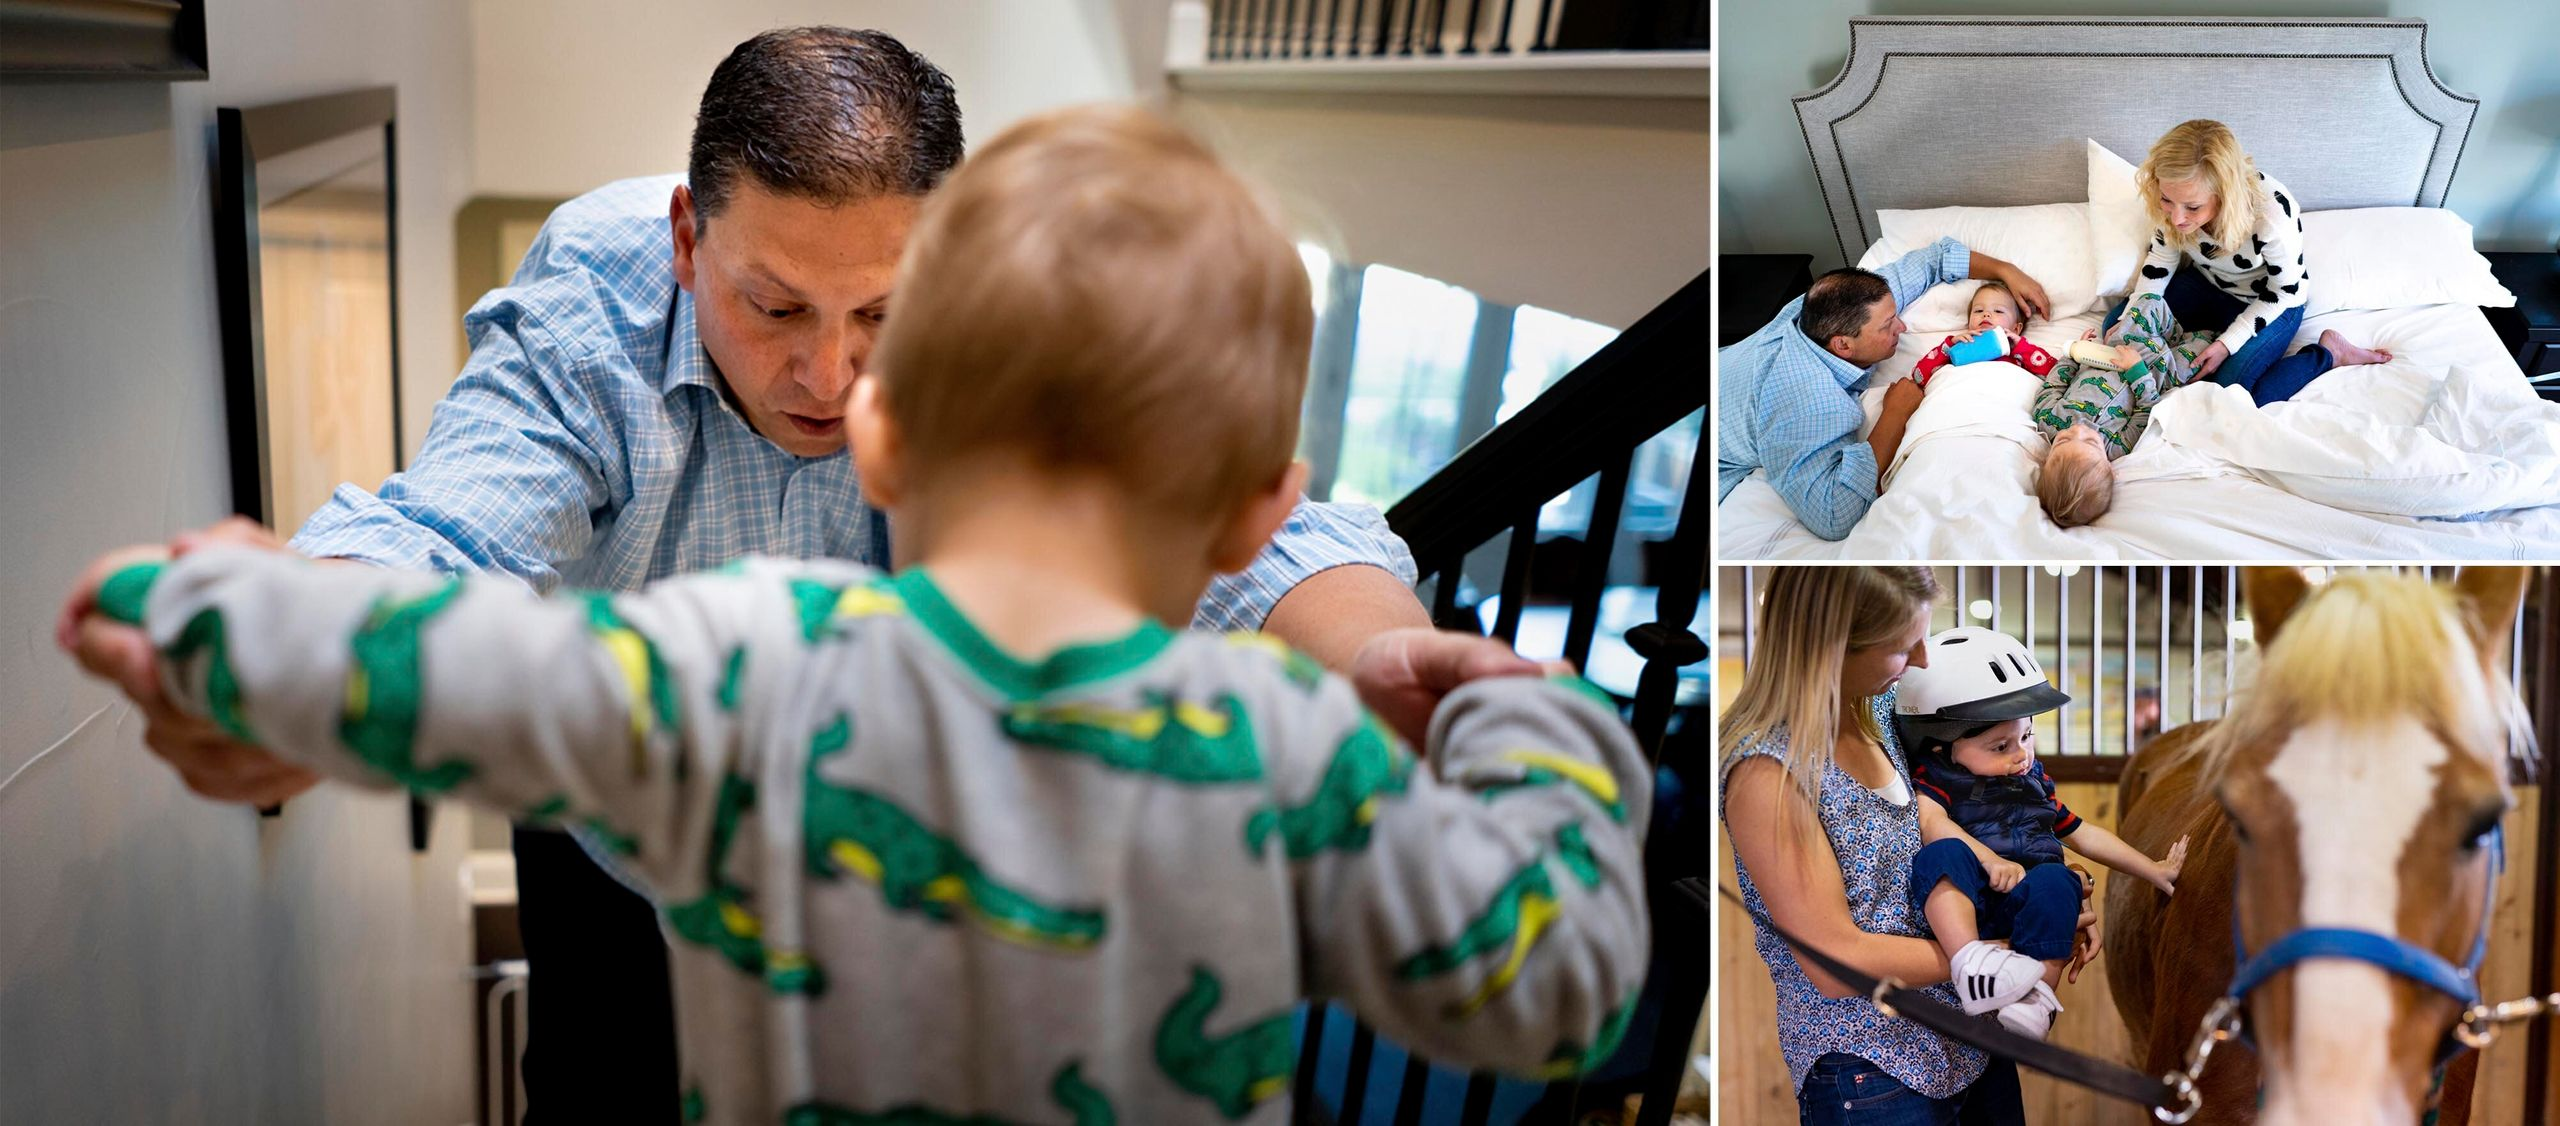 Left: Mark Freed helps his son Maxwell walk down the stairs at their home in Denver. Right top: Amber and Mark feed